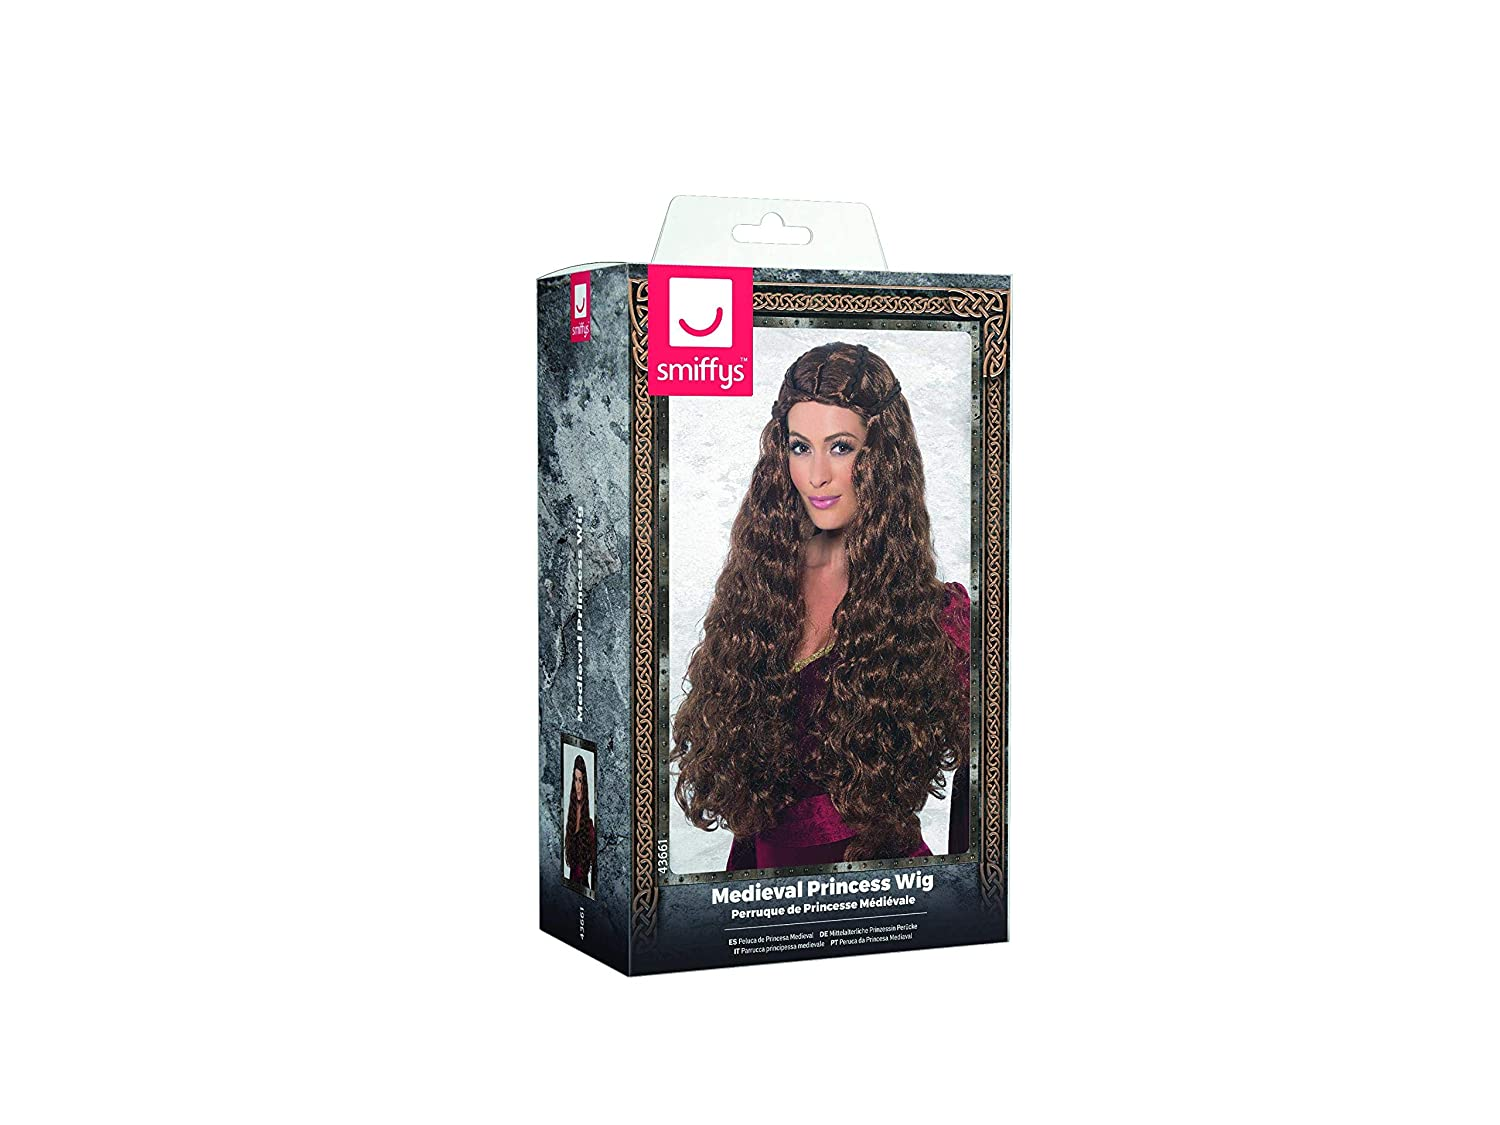 Amazon.com: Smiffys Womens Extra Long and Curly Brown Wig with Braids, One Size, Medieval Princess Wig, 43661: Clothing